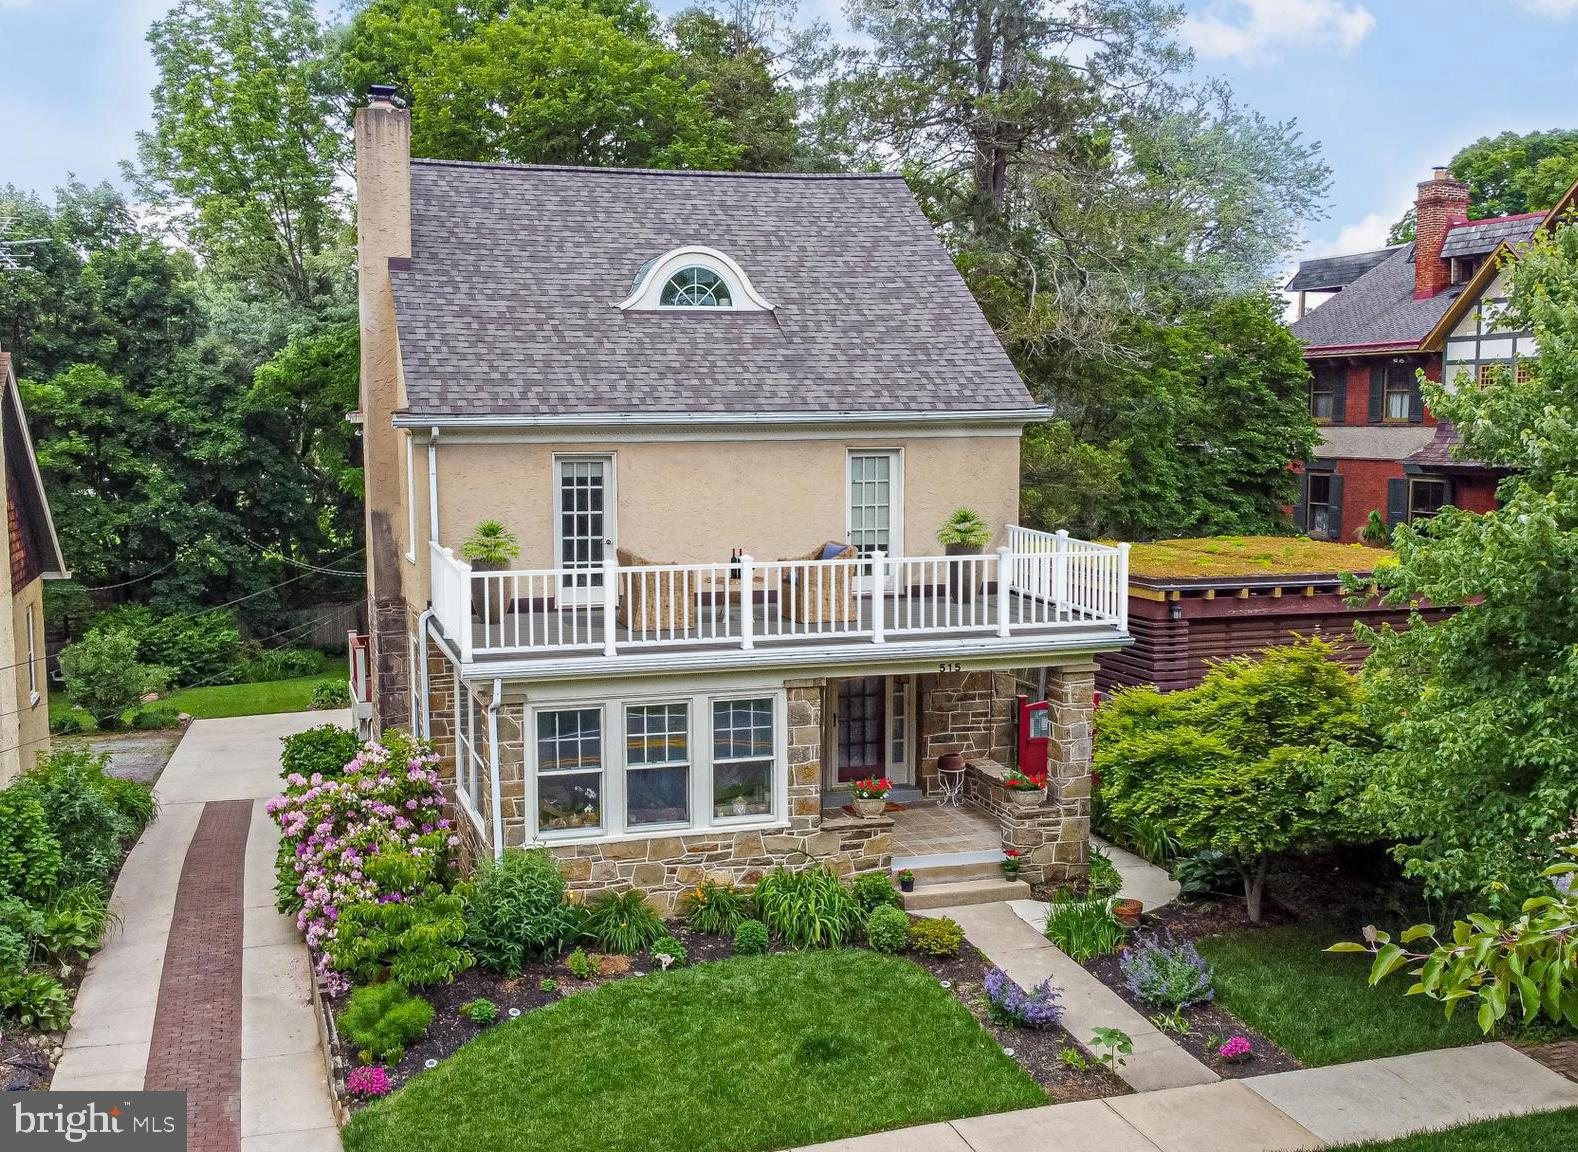 """NEW ROOF DECK INSTALLED & IMPROVED PRICE! A beautifully preserved 1920s bungalow-style home is a prized example of West Chester's historic charm. Facing Everhart Park, this borough gem offers all the park's charm and tranquility.  A welcoming front porch leads you into a spacious living room showcasing gorgeous original oak hardwood floor. A beautiful key-stoned fireplace with a wood stove cast-iron insert provides warmth on cozy winter nights. The stove also has a capped gas line in case you would like a convenient gas fireplace. To the left, enter through beautiful artisan-built French doors into a glass-enclosed sunroom and view the tranquility of the park's beauty.  The second set of French doors opens into a spacious private dining room appointed with original arts and crafts brass lighting fixtures, showcasing a handcrafted built-in glass corner china cabinet. The room provides a plentiful number of windows with views of the rear deck and spacious yard. Make a right turn through the swinging door into the stunning updated kitchen featuring granite countertops, 42"""" custom cabinetry. modern recessed lighting, and a center island, all on the original restored hardwood flooring. The kitchen offers a bonus feature, a custom built-in breakfast nook, a spacious area where you can relax with a cup of coffee. Through the French door is a large custom-built mahogany deck (2014) with two-toned white cedar piers that overlook a beautiful private backyard and Horace Pippin Park!   Under the deck is a built-in potting shed for all your garden needs. The second level offers three bedrooms.  It boasts of one very large bedroom with a built-in window seat and two French doors that take you onto a unique front sundeck that overlooks a gorgeous view of Everhart Park, and a place for you to sit and enjoy your favorite cocktail.  In addition, there is a second sizable bedroom for family or guests, and a third bedroom that could also be used as office space that gives access to a b"""